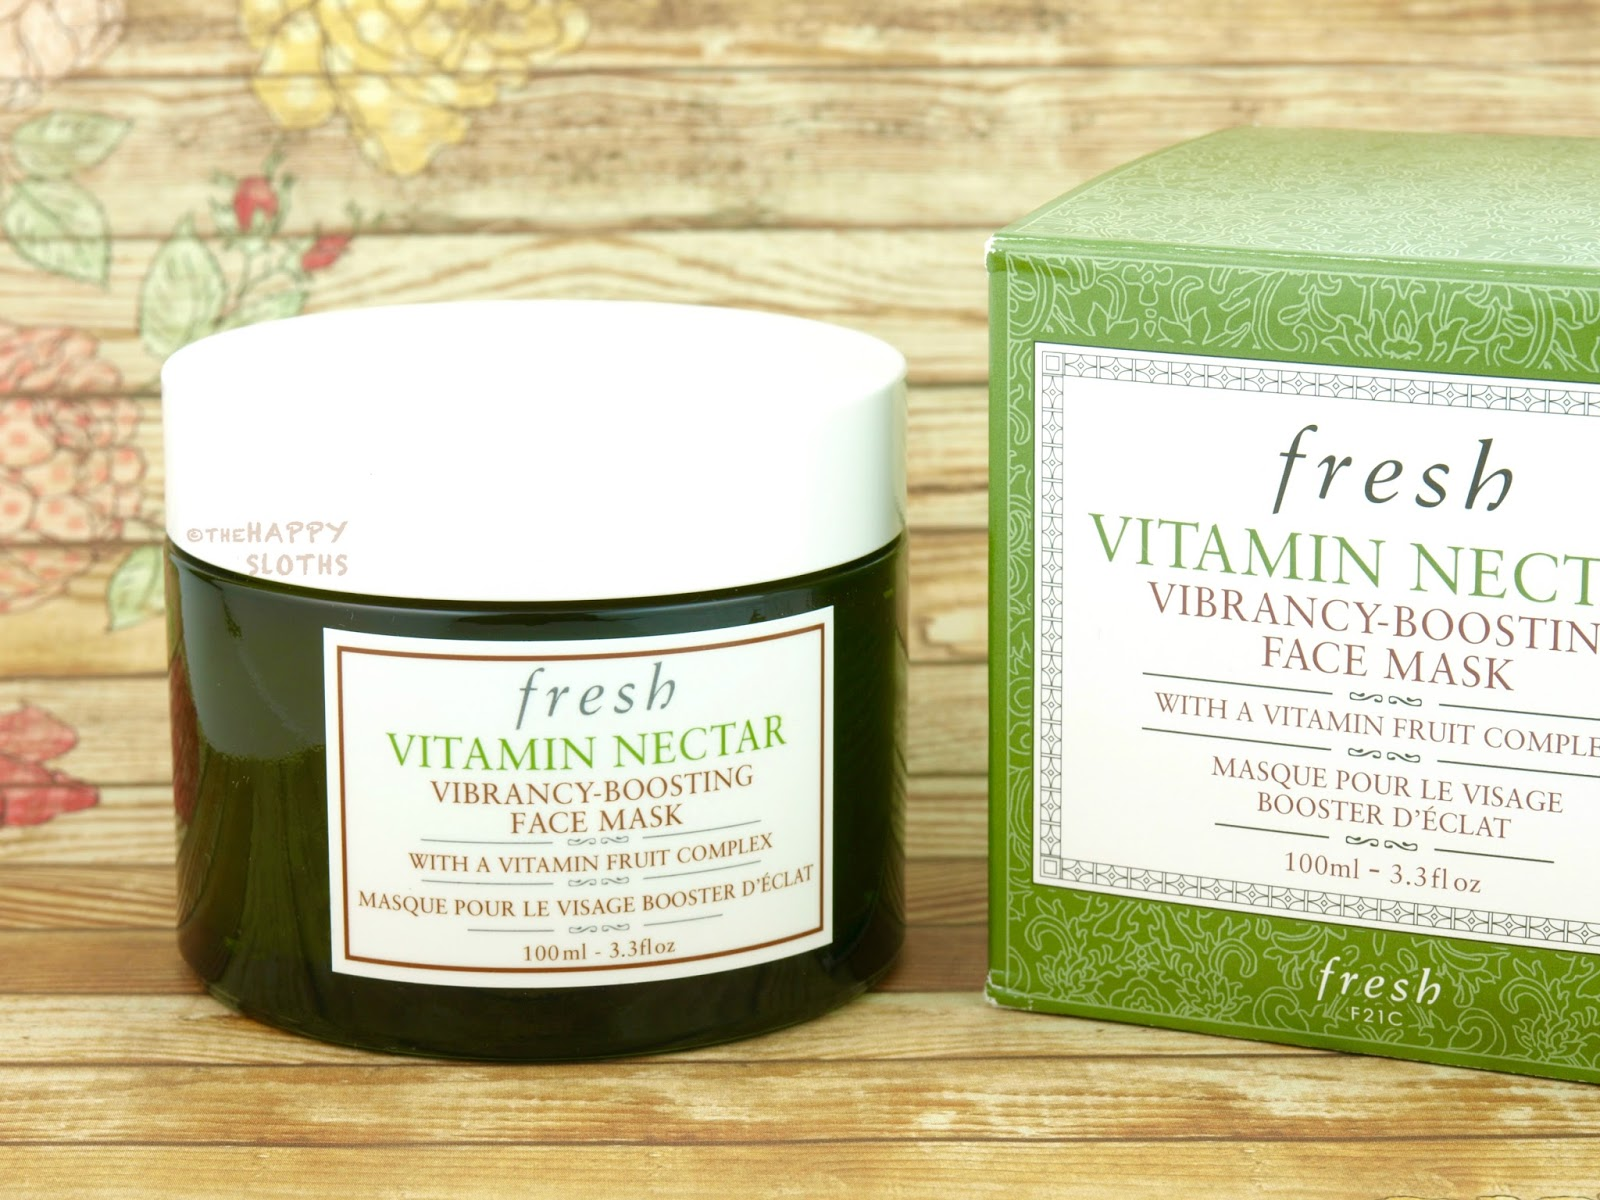 Fresh Vitamin Nectar Vibrancy-Boosting Face Mask: Review